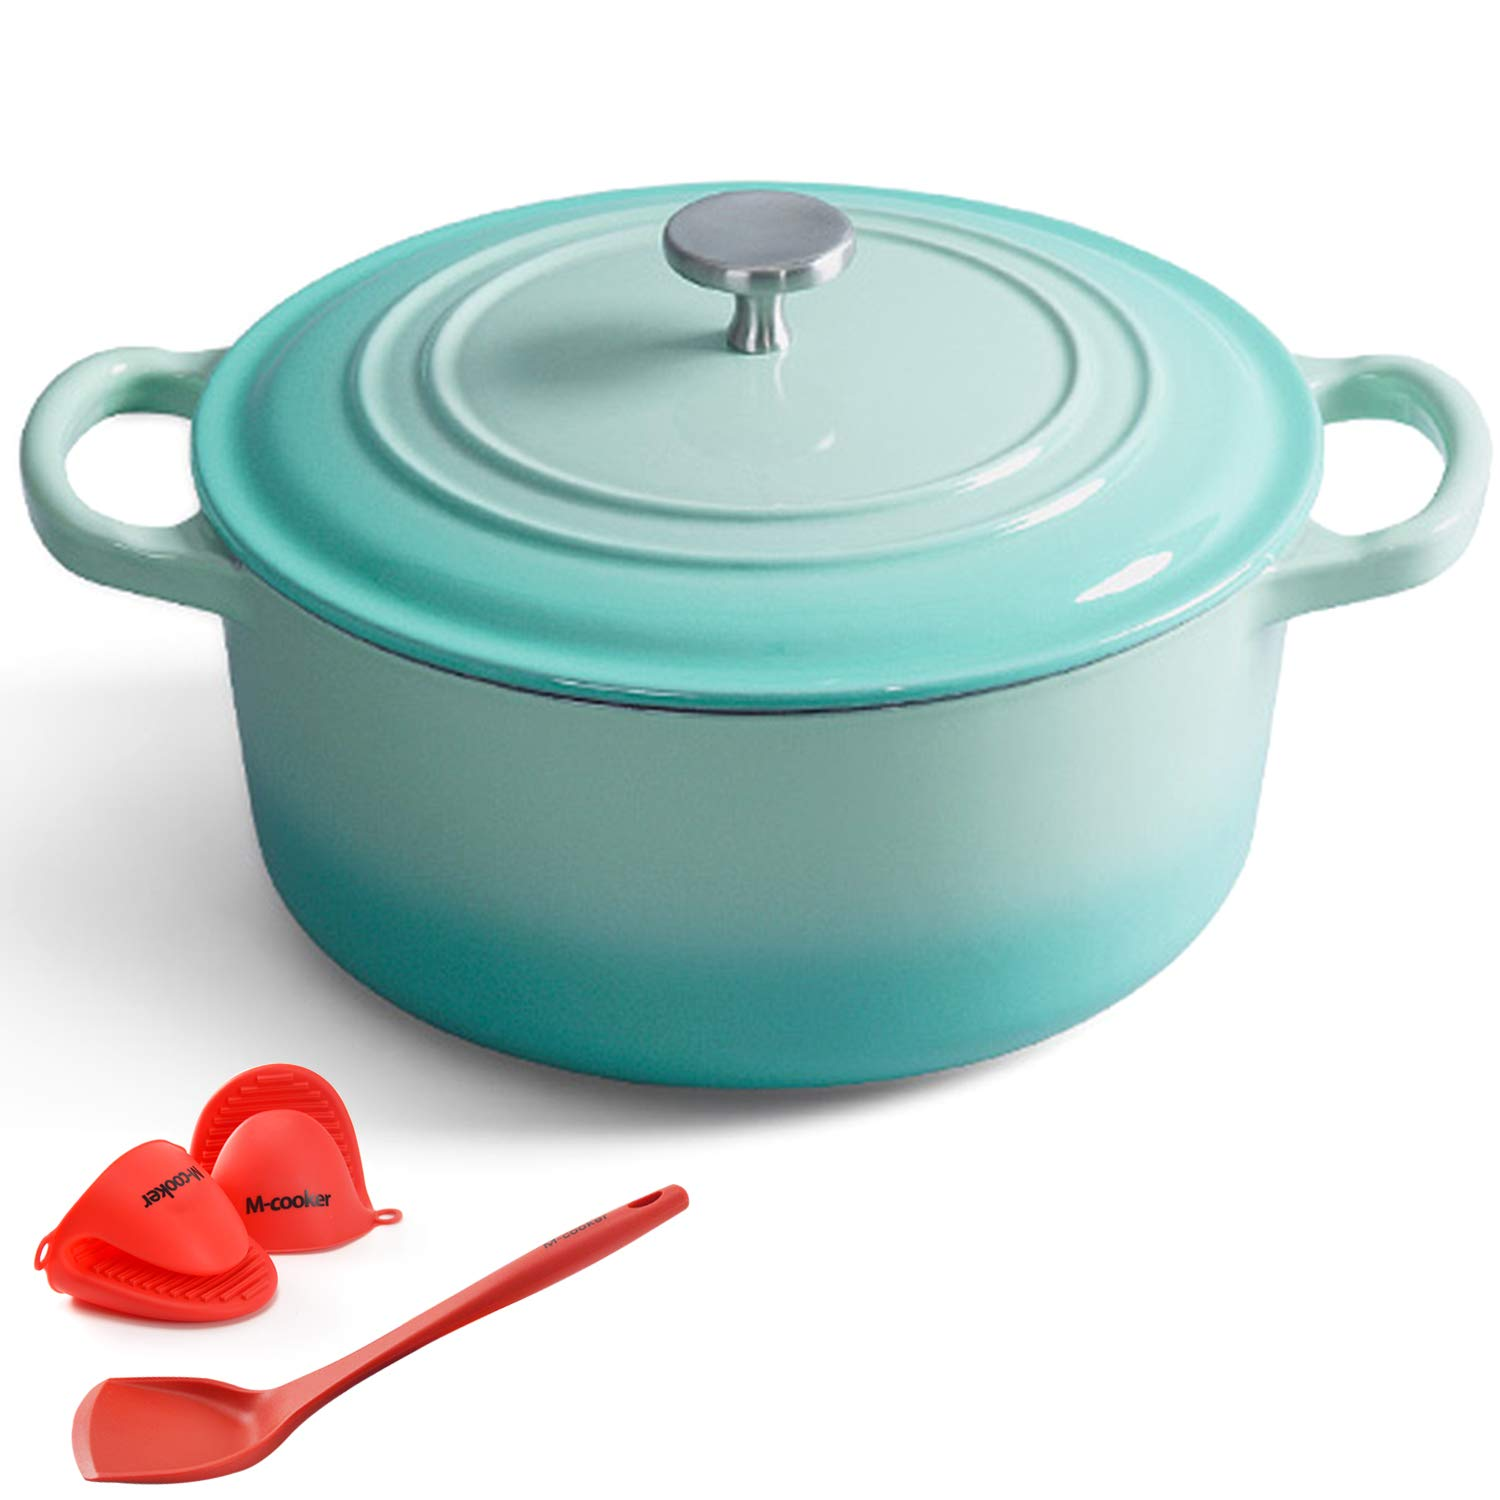 M-cooker 4.5 Quart Enameled Dutch Oven with Self Basting Lid Household Cast Iron Soup Pot Non-stick Enamel Pot with Silicone Gloves and Anti-hot Silicone Shovel (Mint Blue)